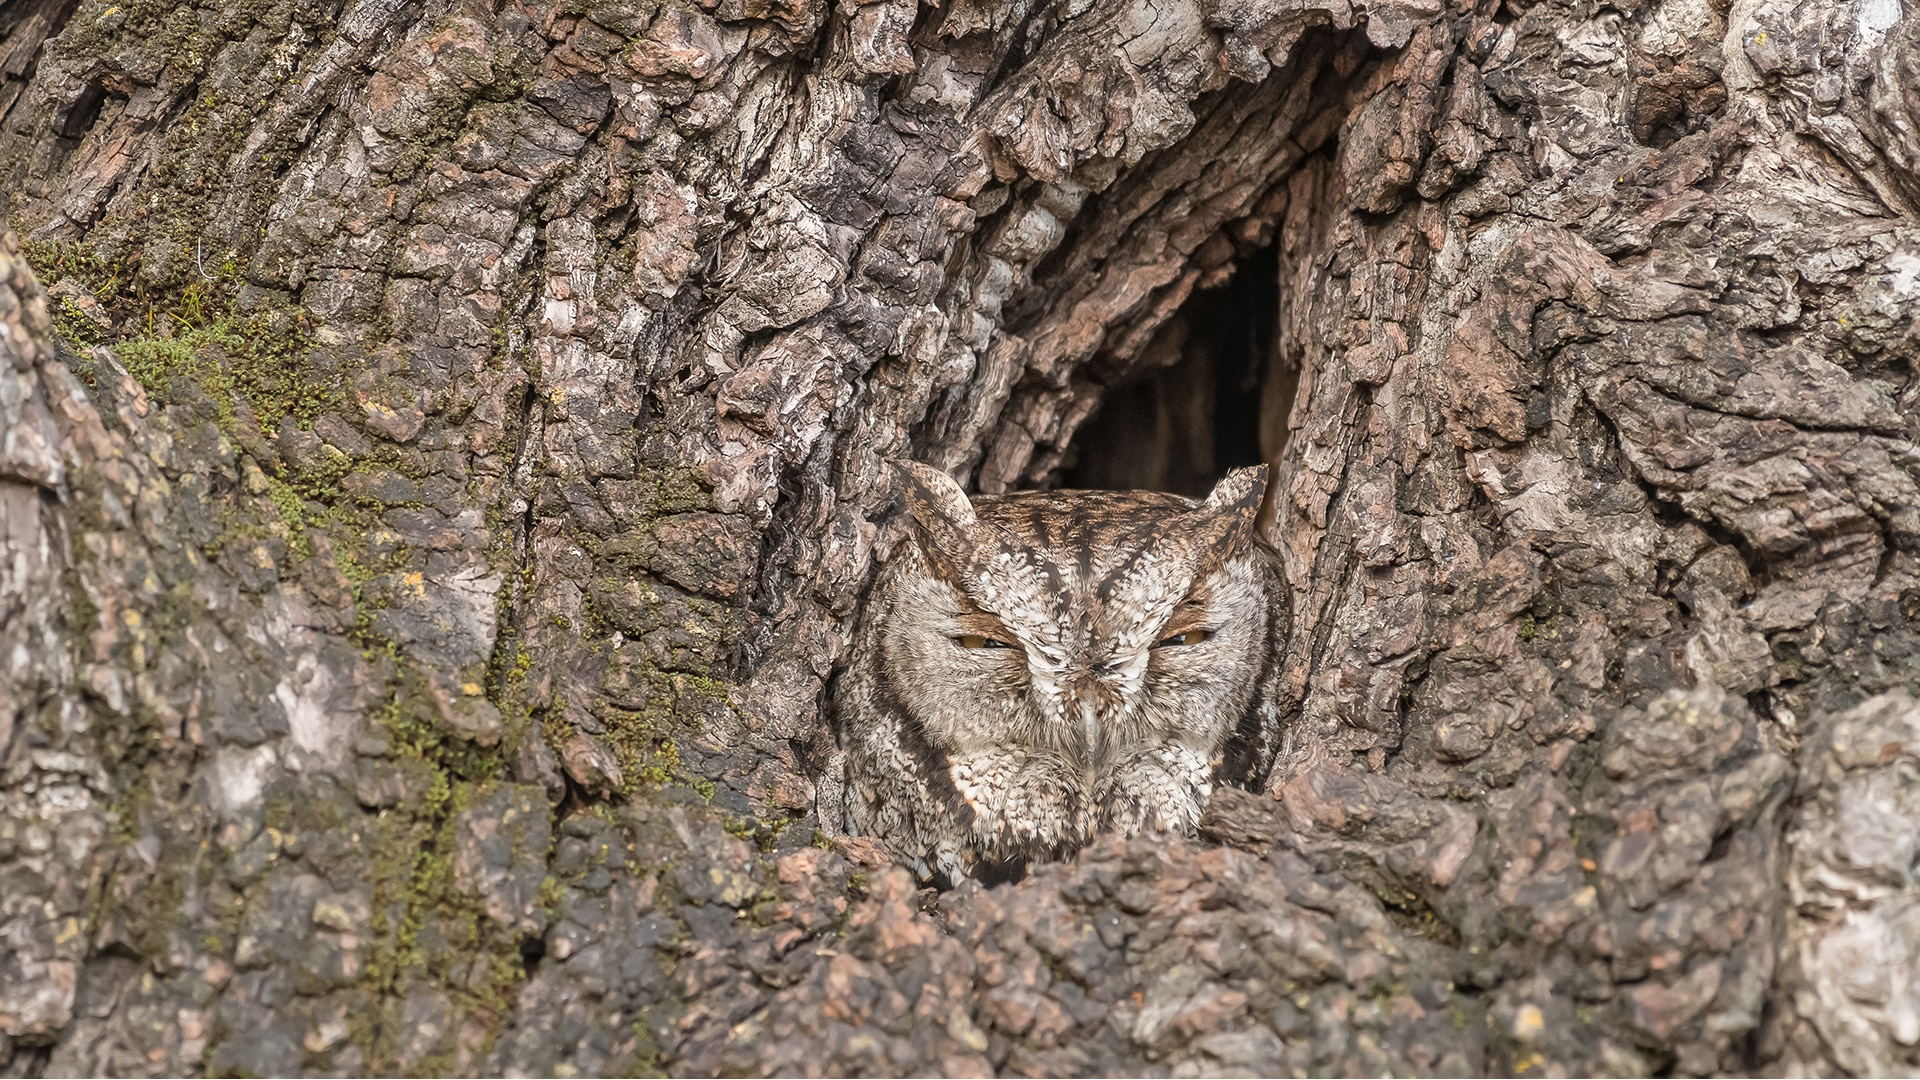 Owl well camouflaged